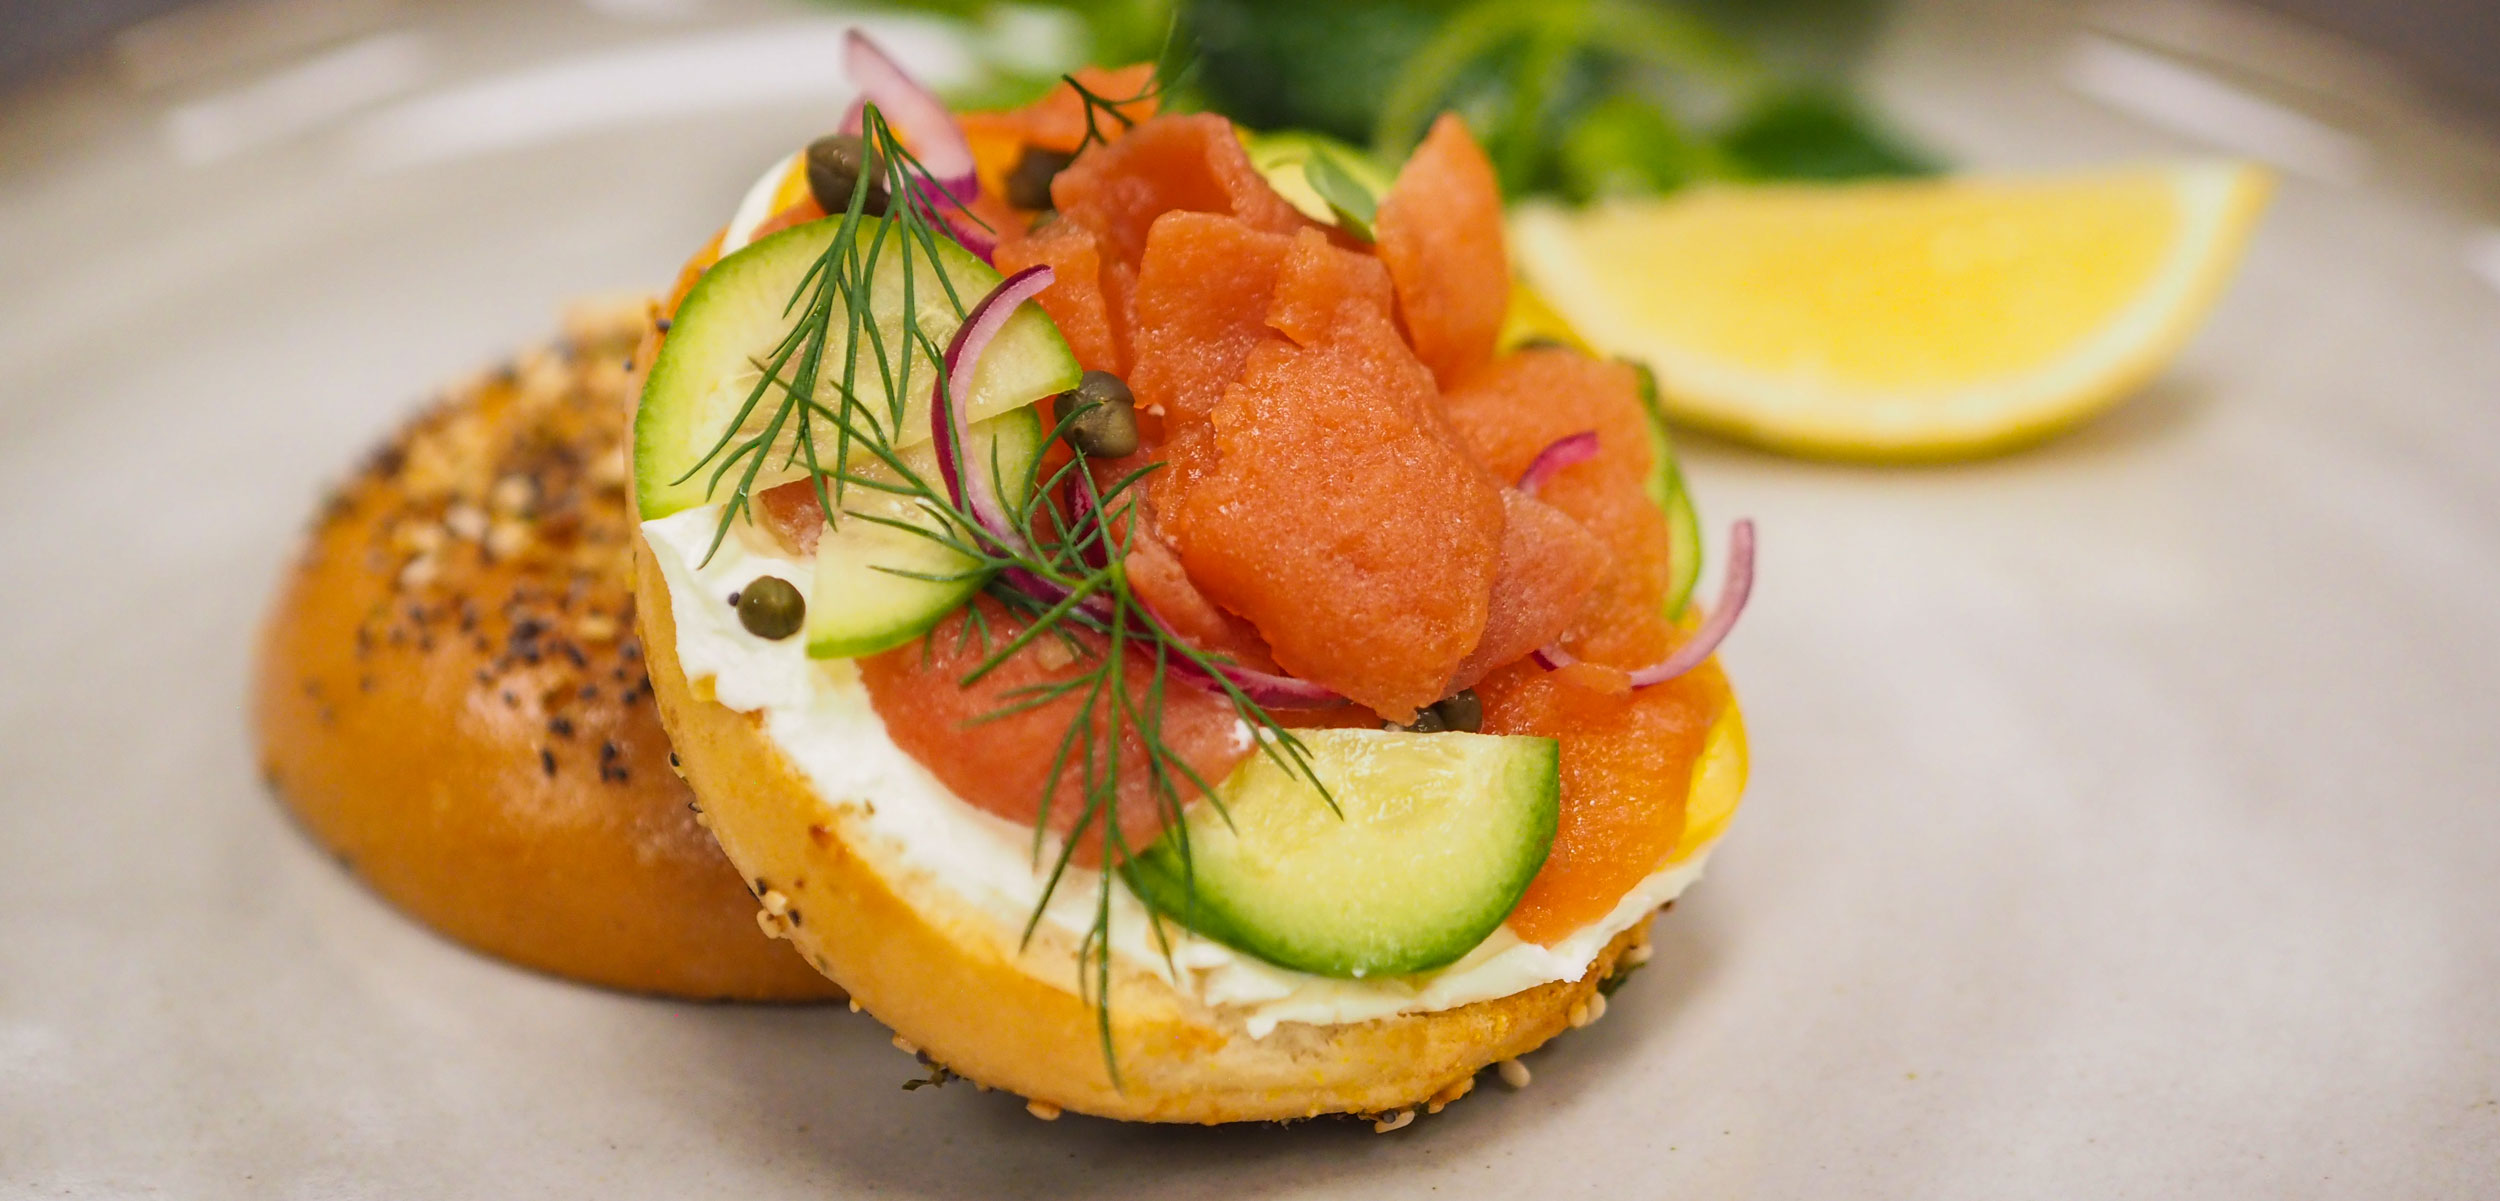 lox on a bagel